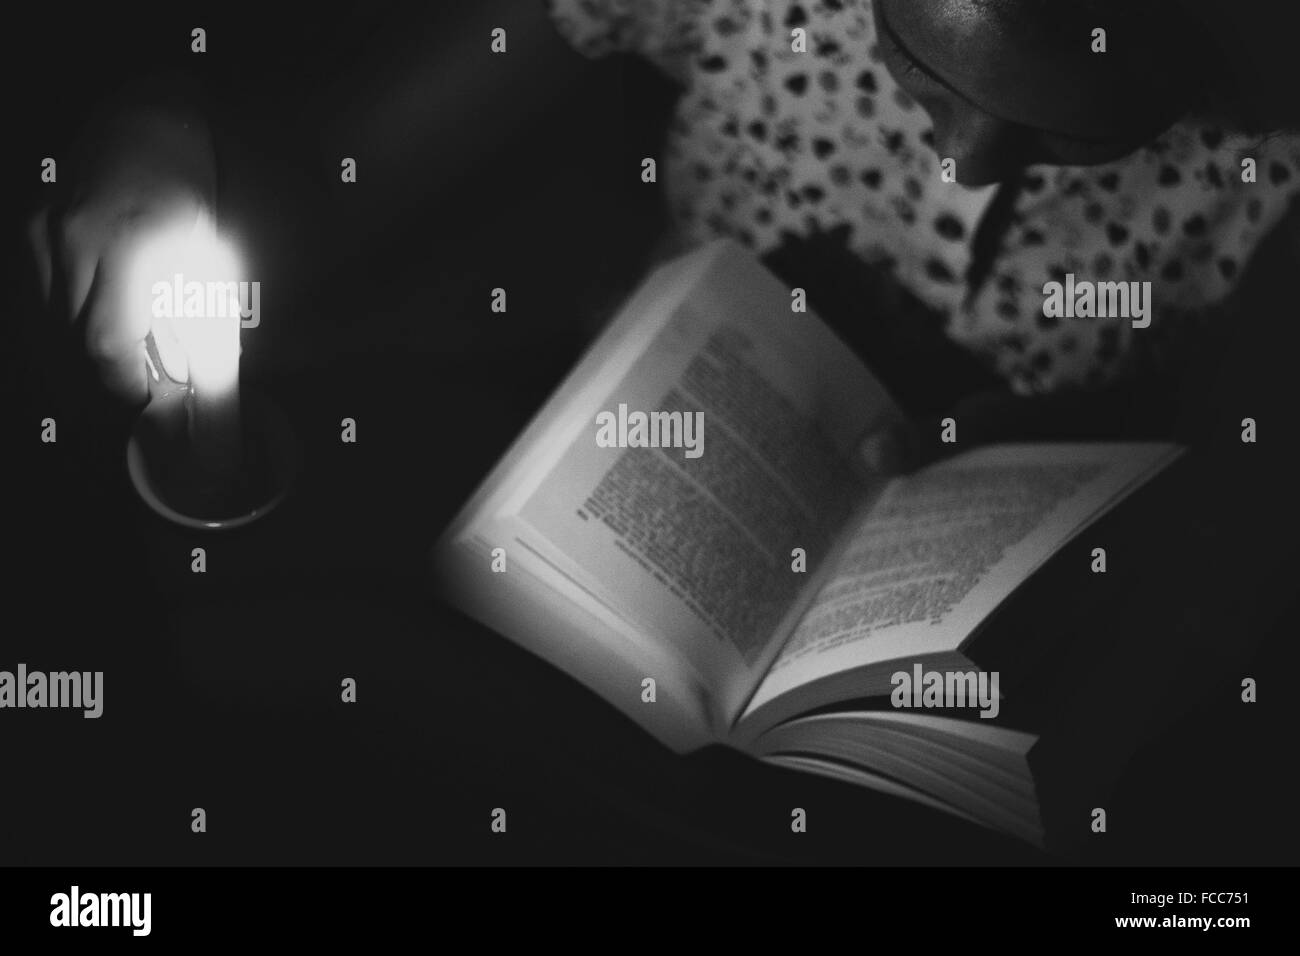 Close-Up High Angle View of a Girl Reading Book In The Dark Photo Stock